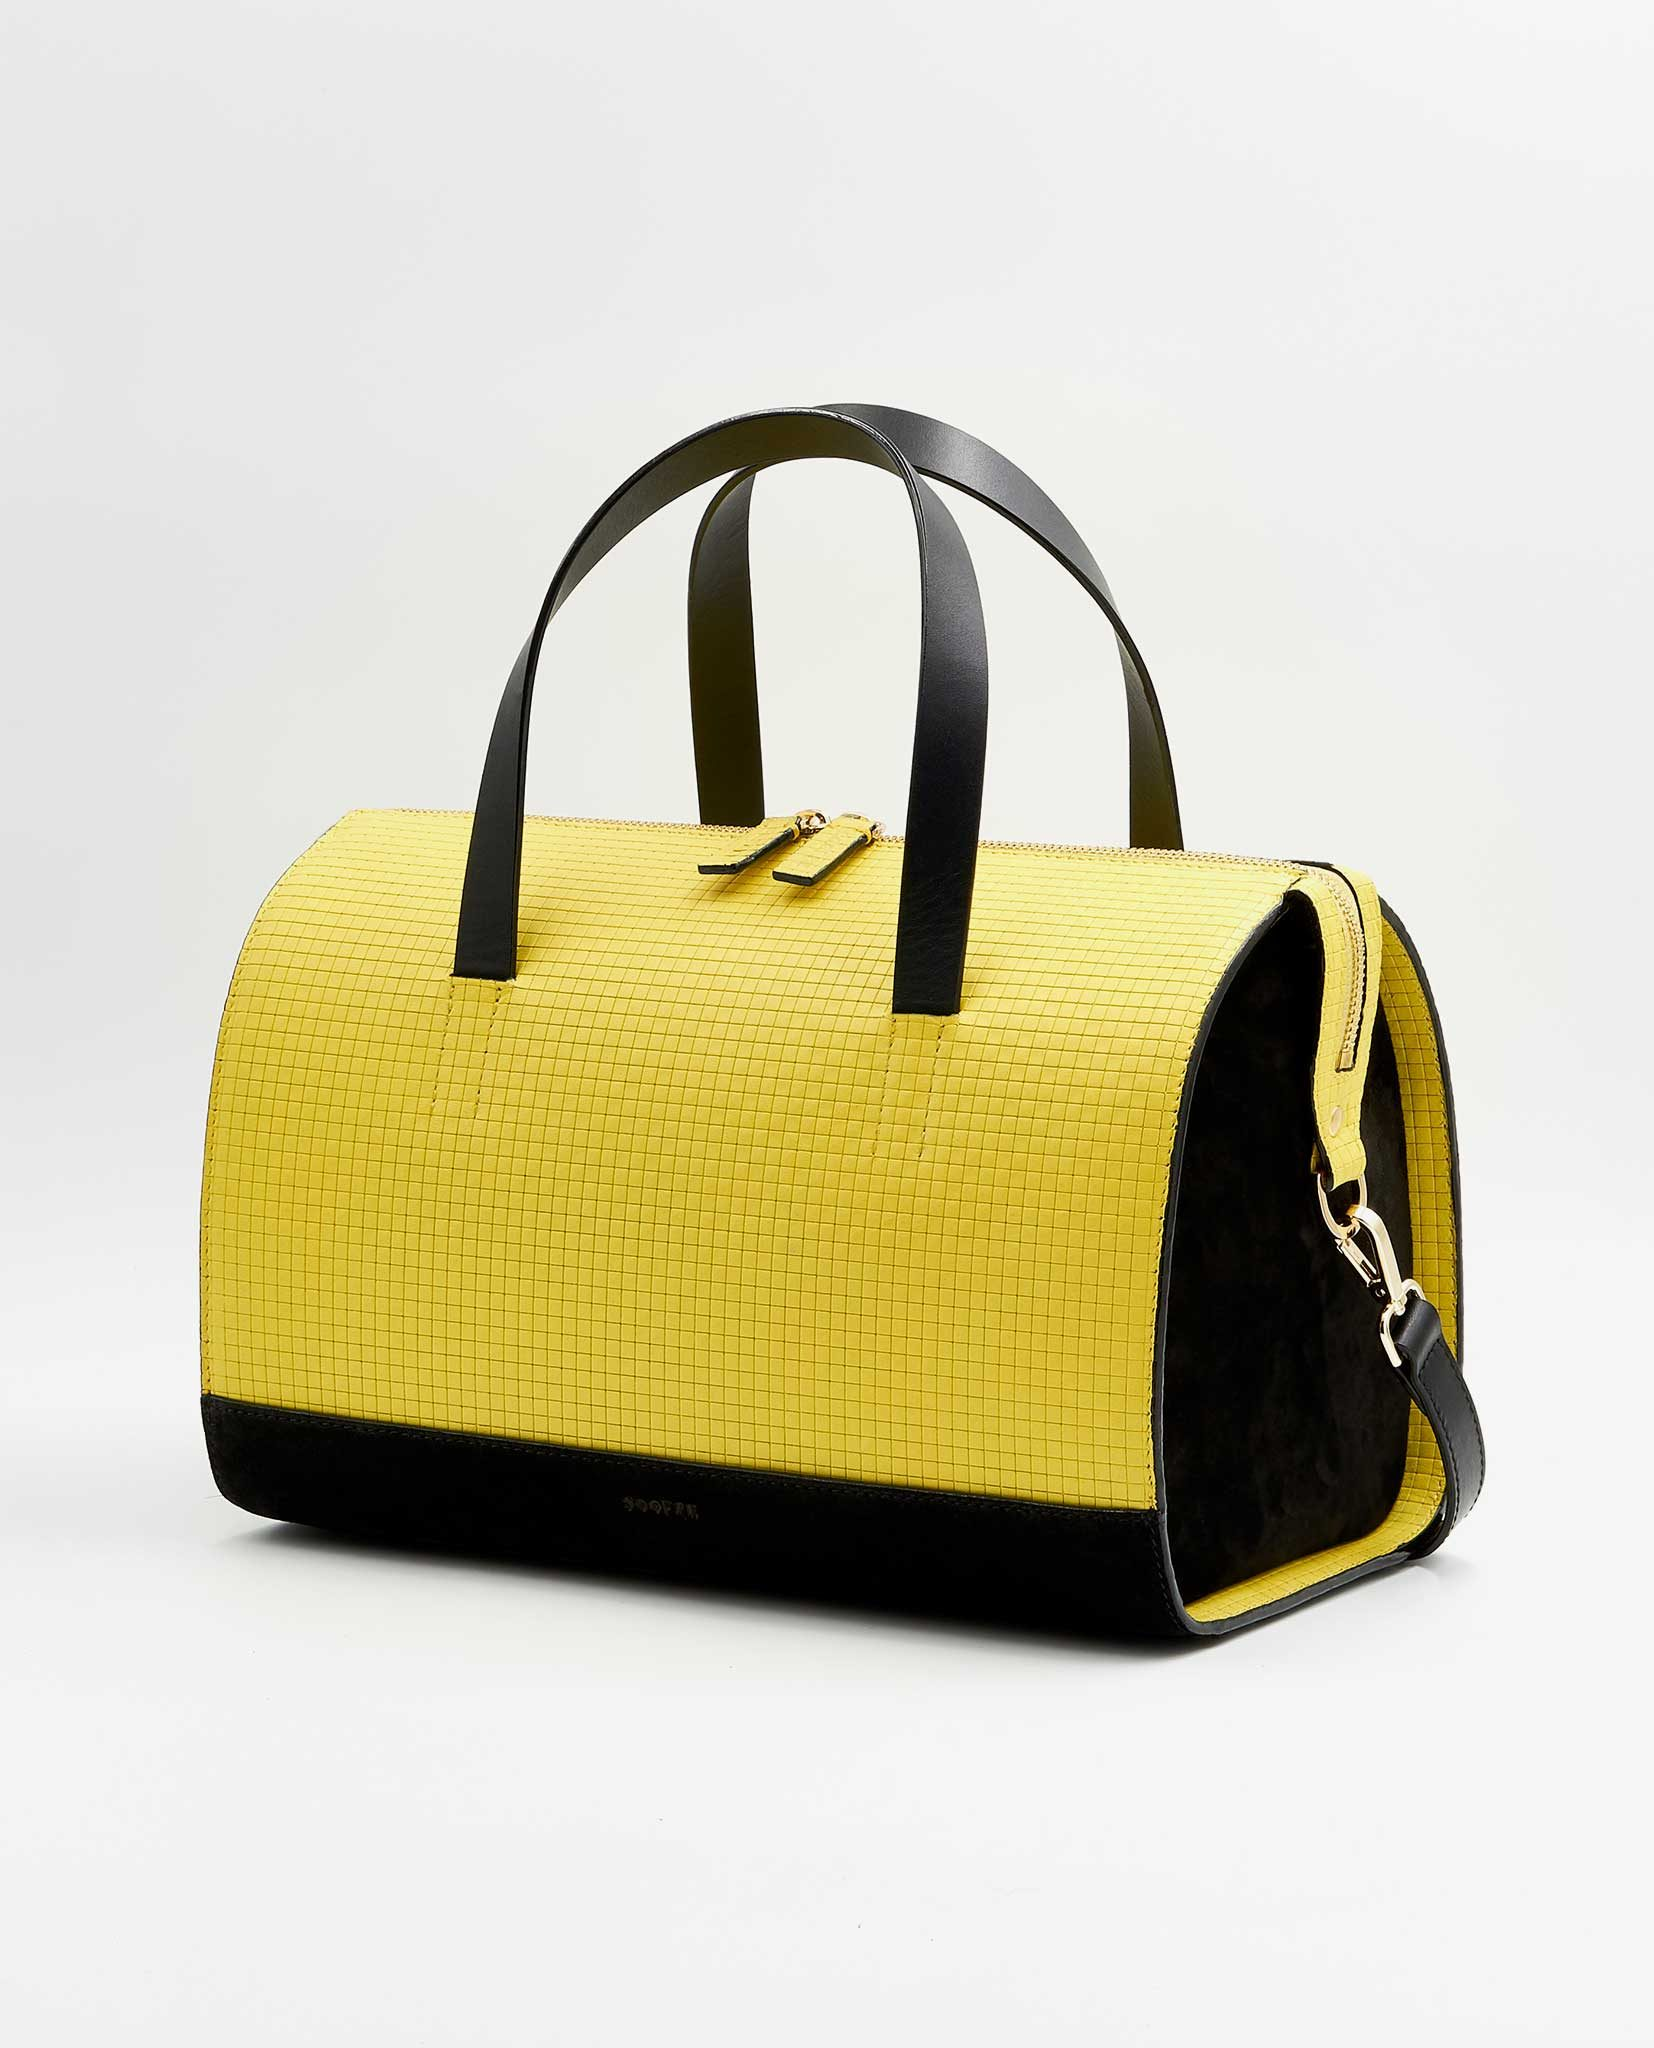 SOOFRE Berlin unique Bowler Bag squared yellow / black